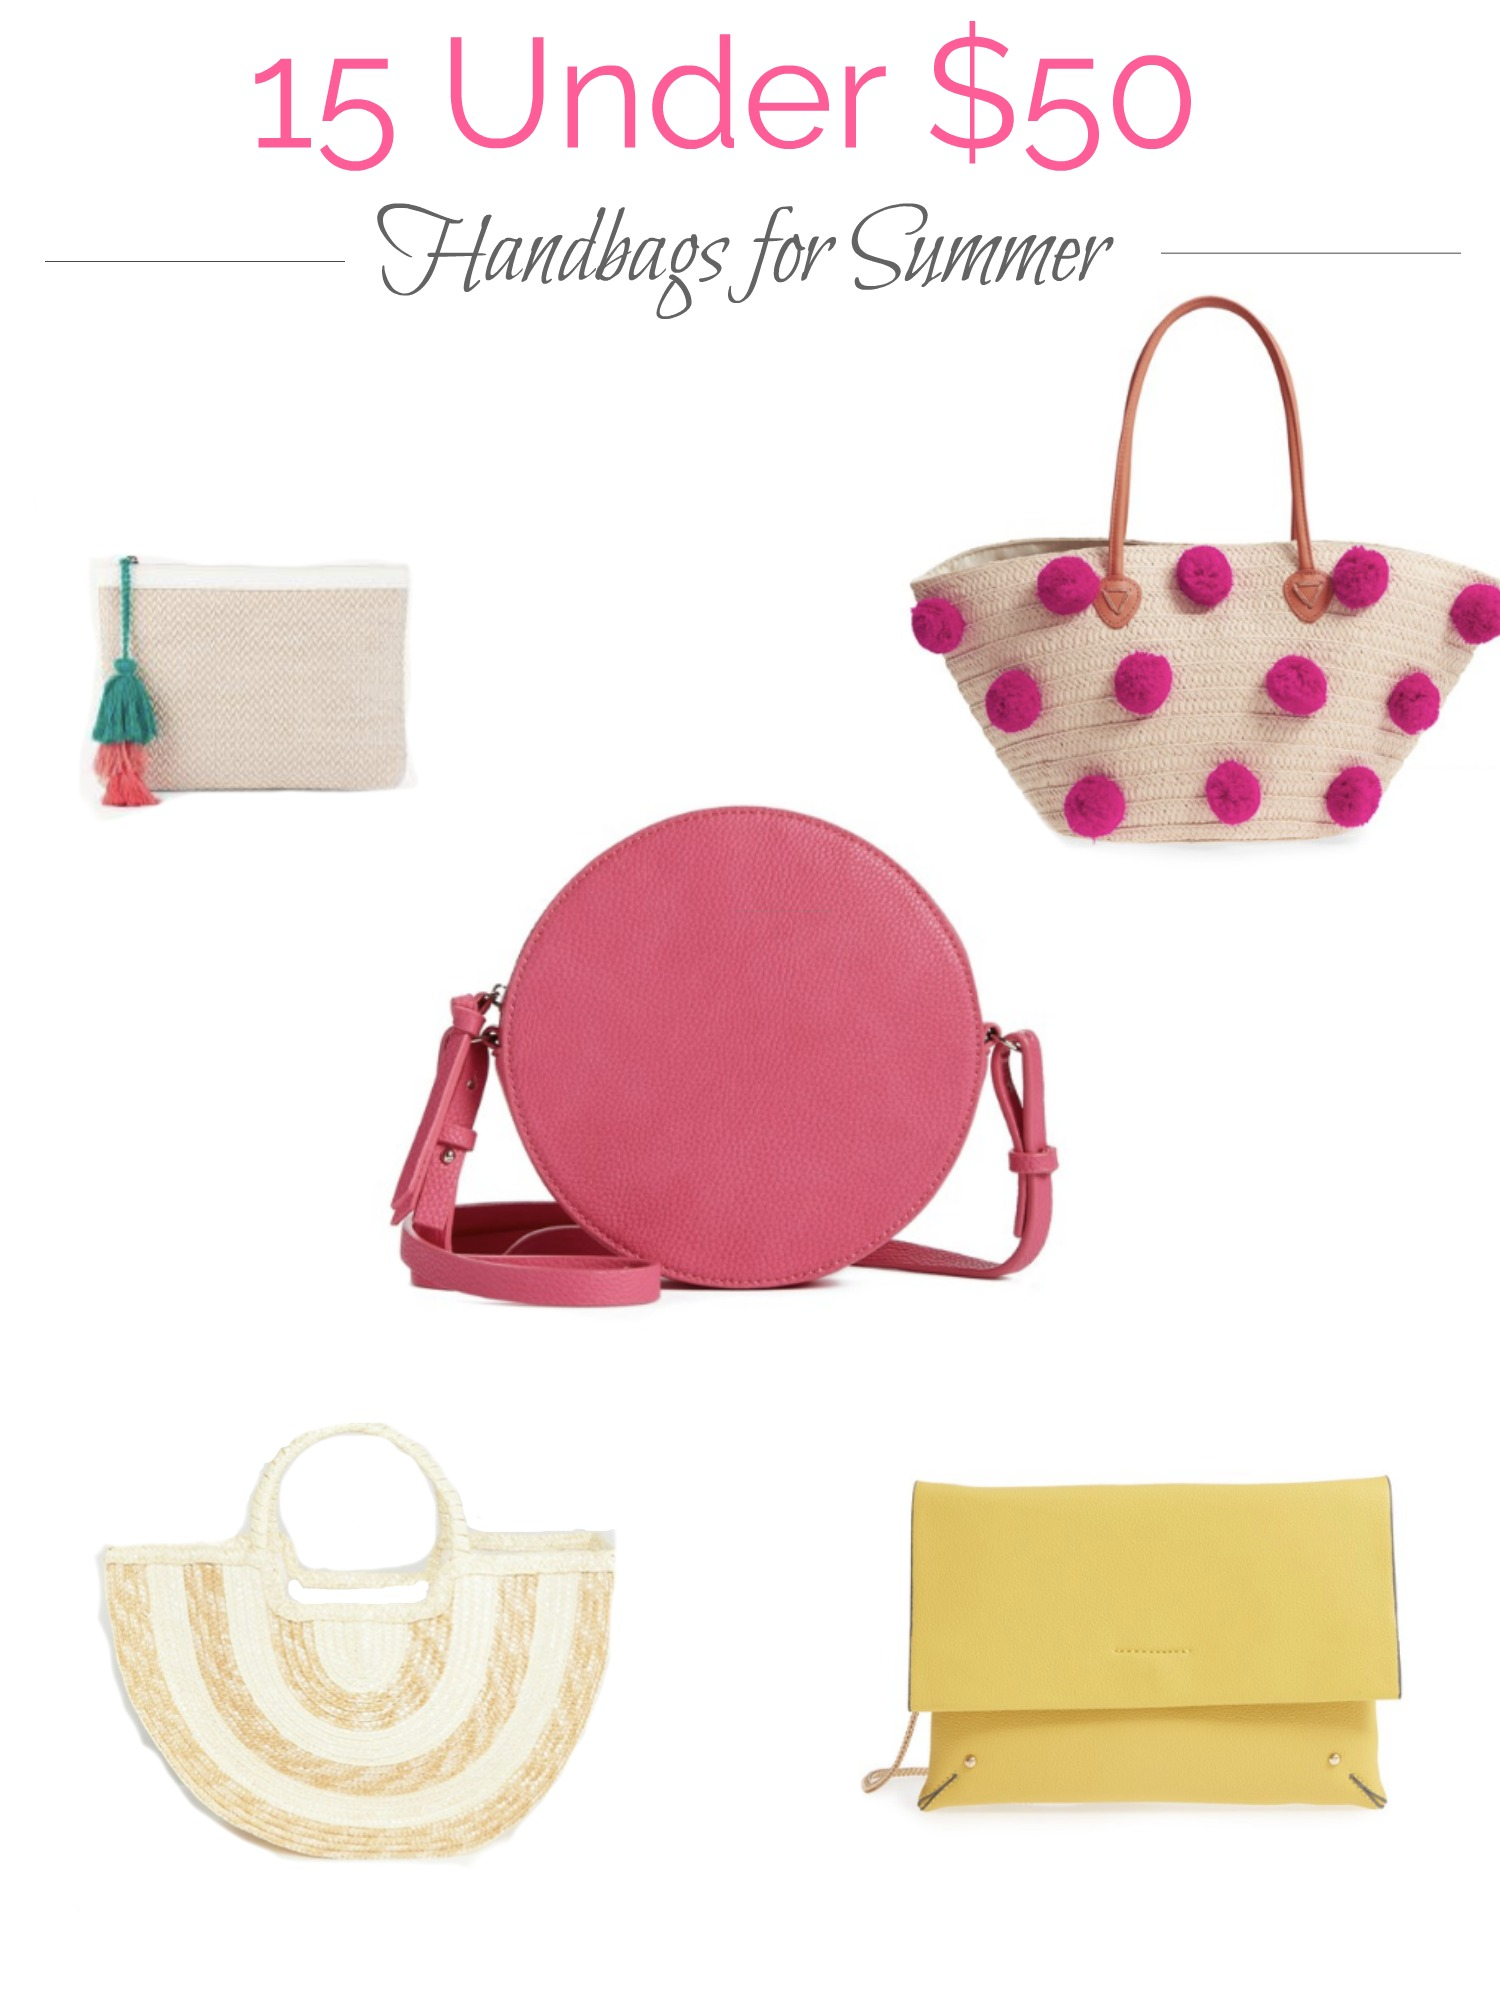 15 Under $50-Handbags for Summer